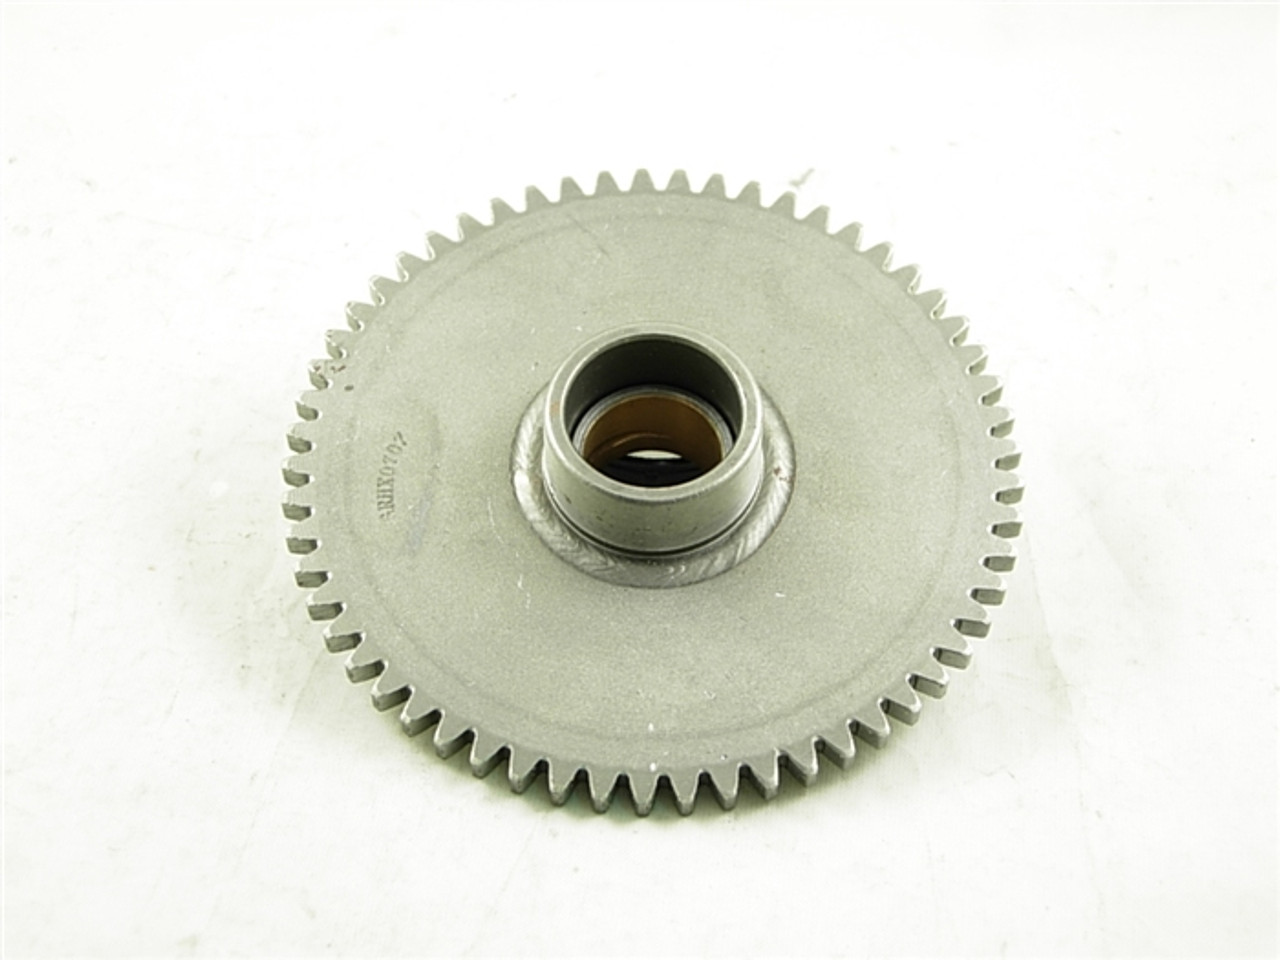 GEAR DRIVE SPROCKET/STARTER GEAR 11216-A68-10